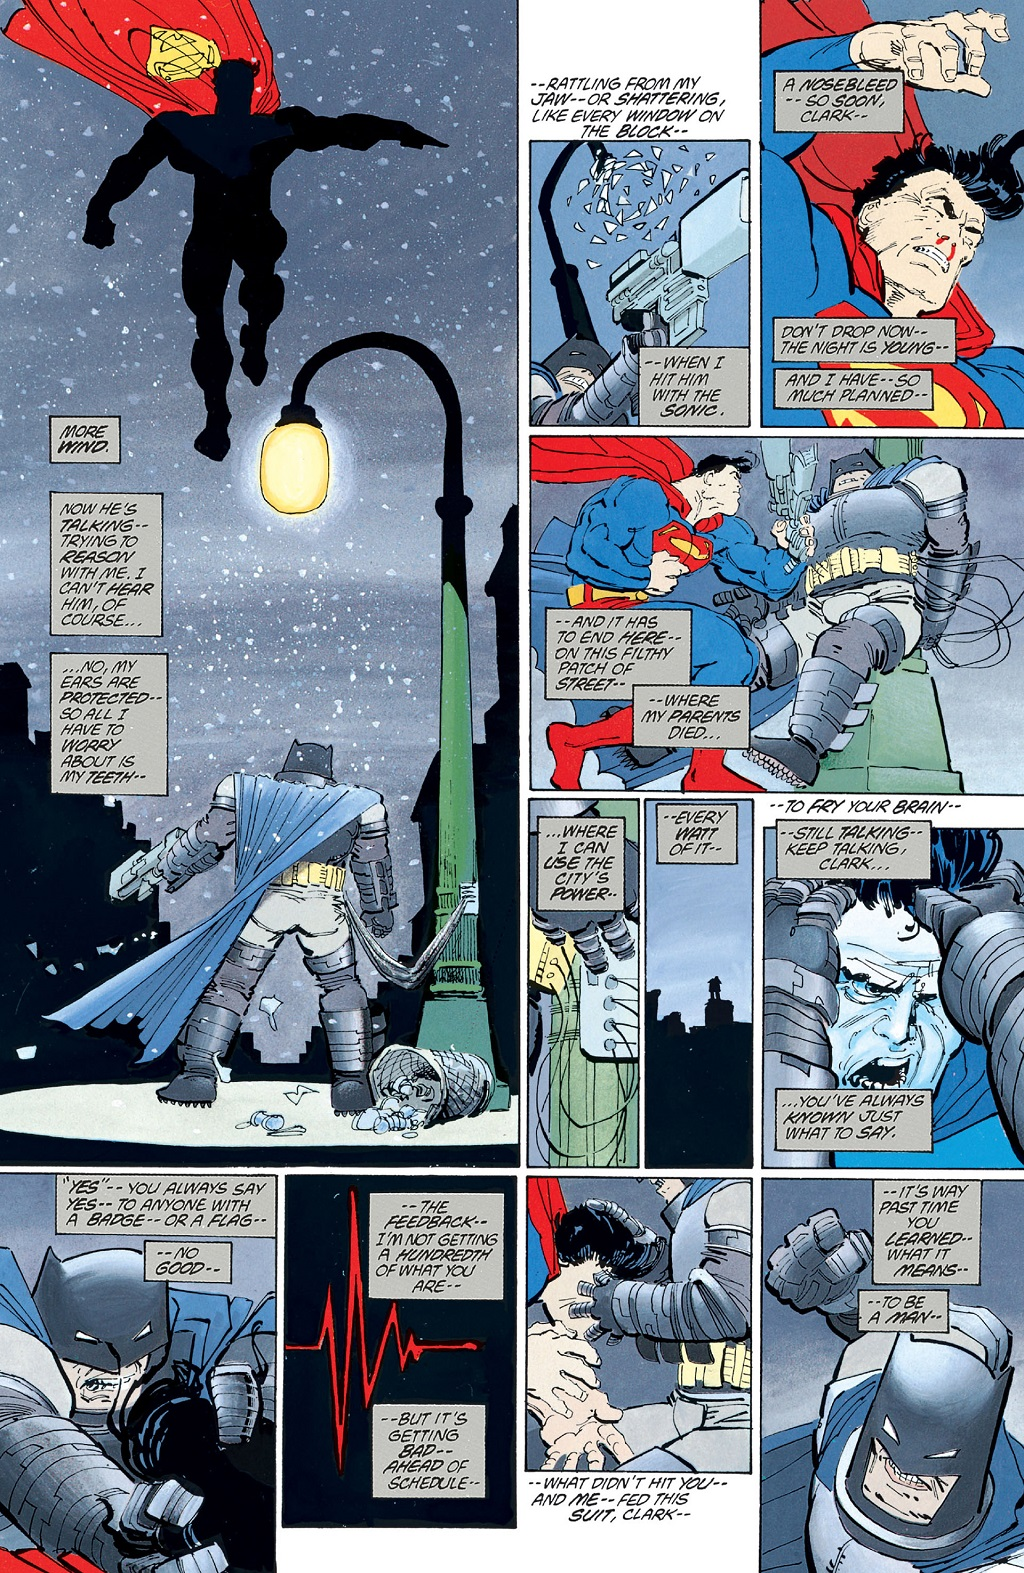 I didn`t read Dark Knight Returns for a long time, because I thought the whole Batman and Superman fighting thing was dumb. Now that I`ve read it, I admit it`s pretty good, though still not my favorite.